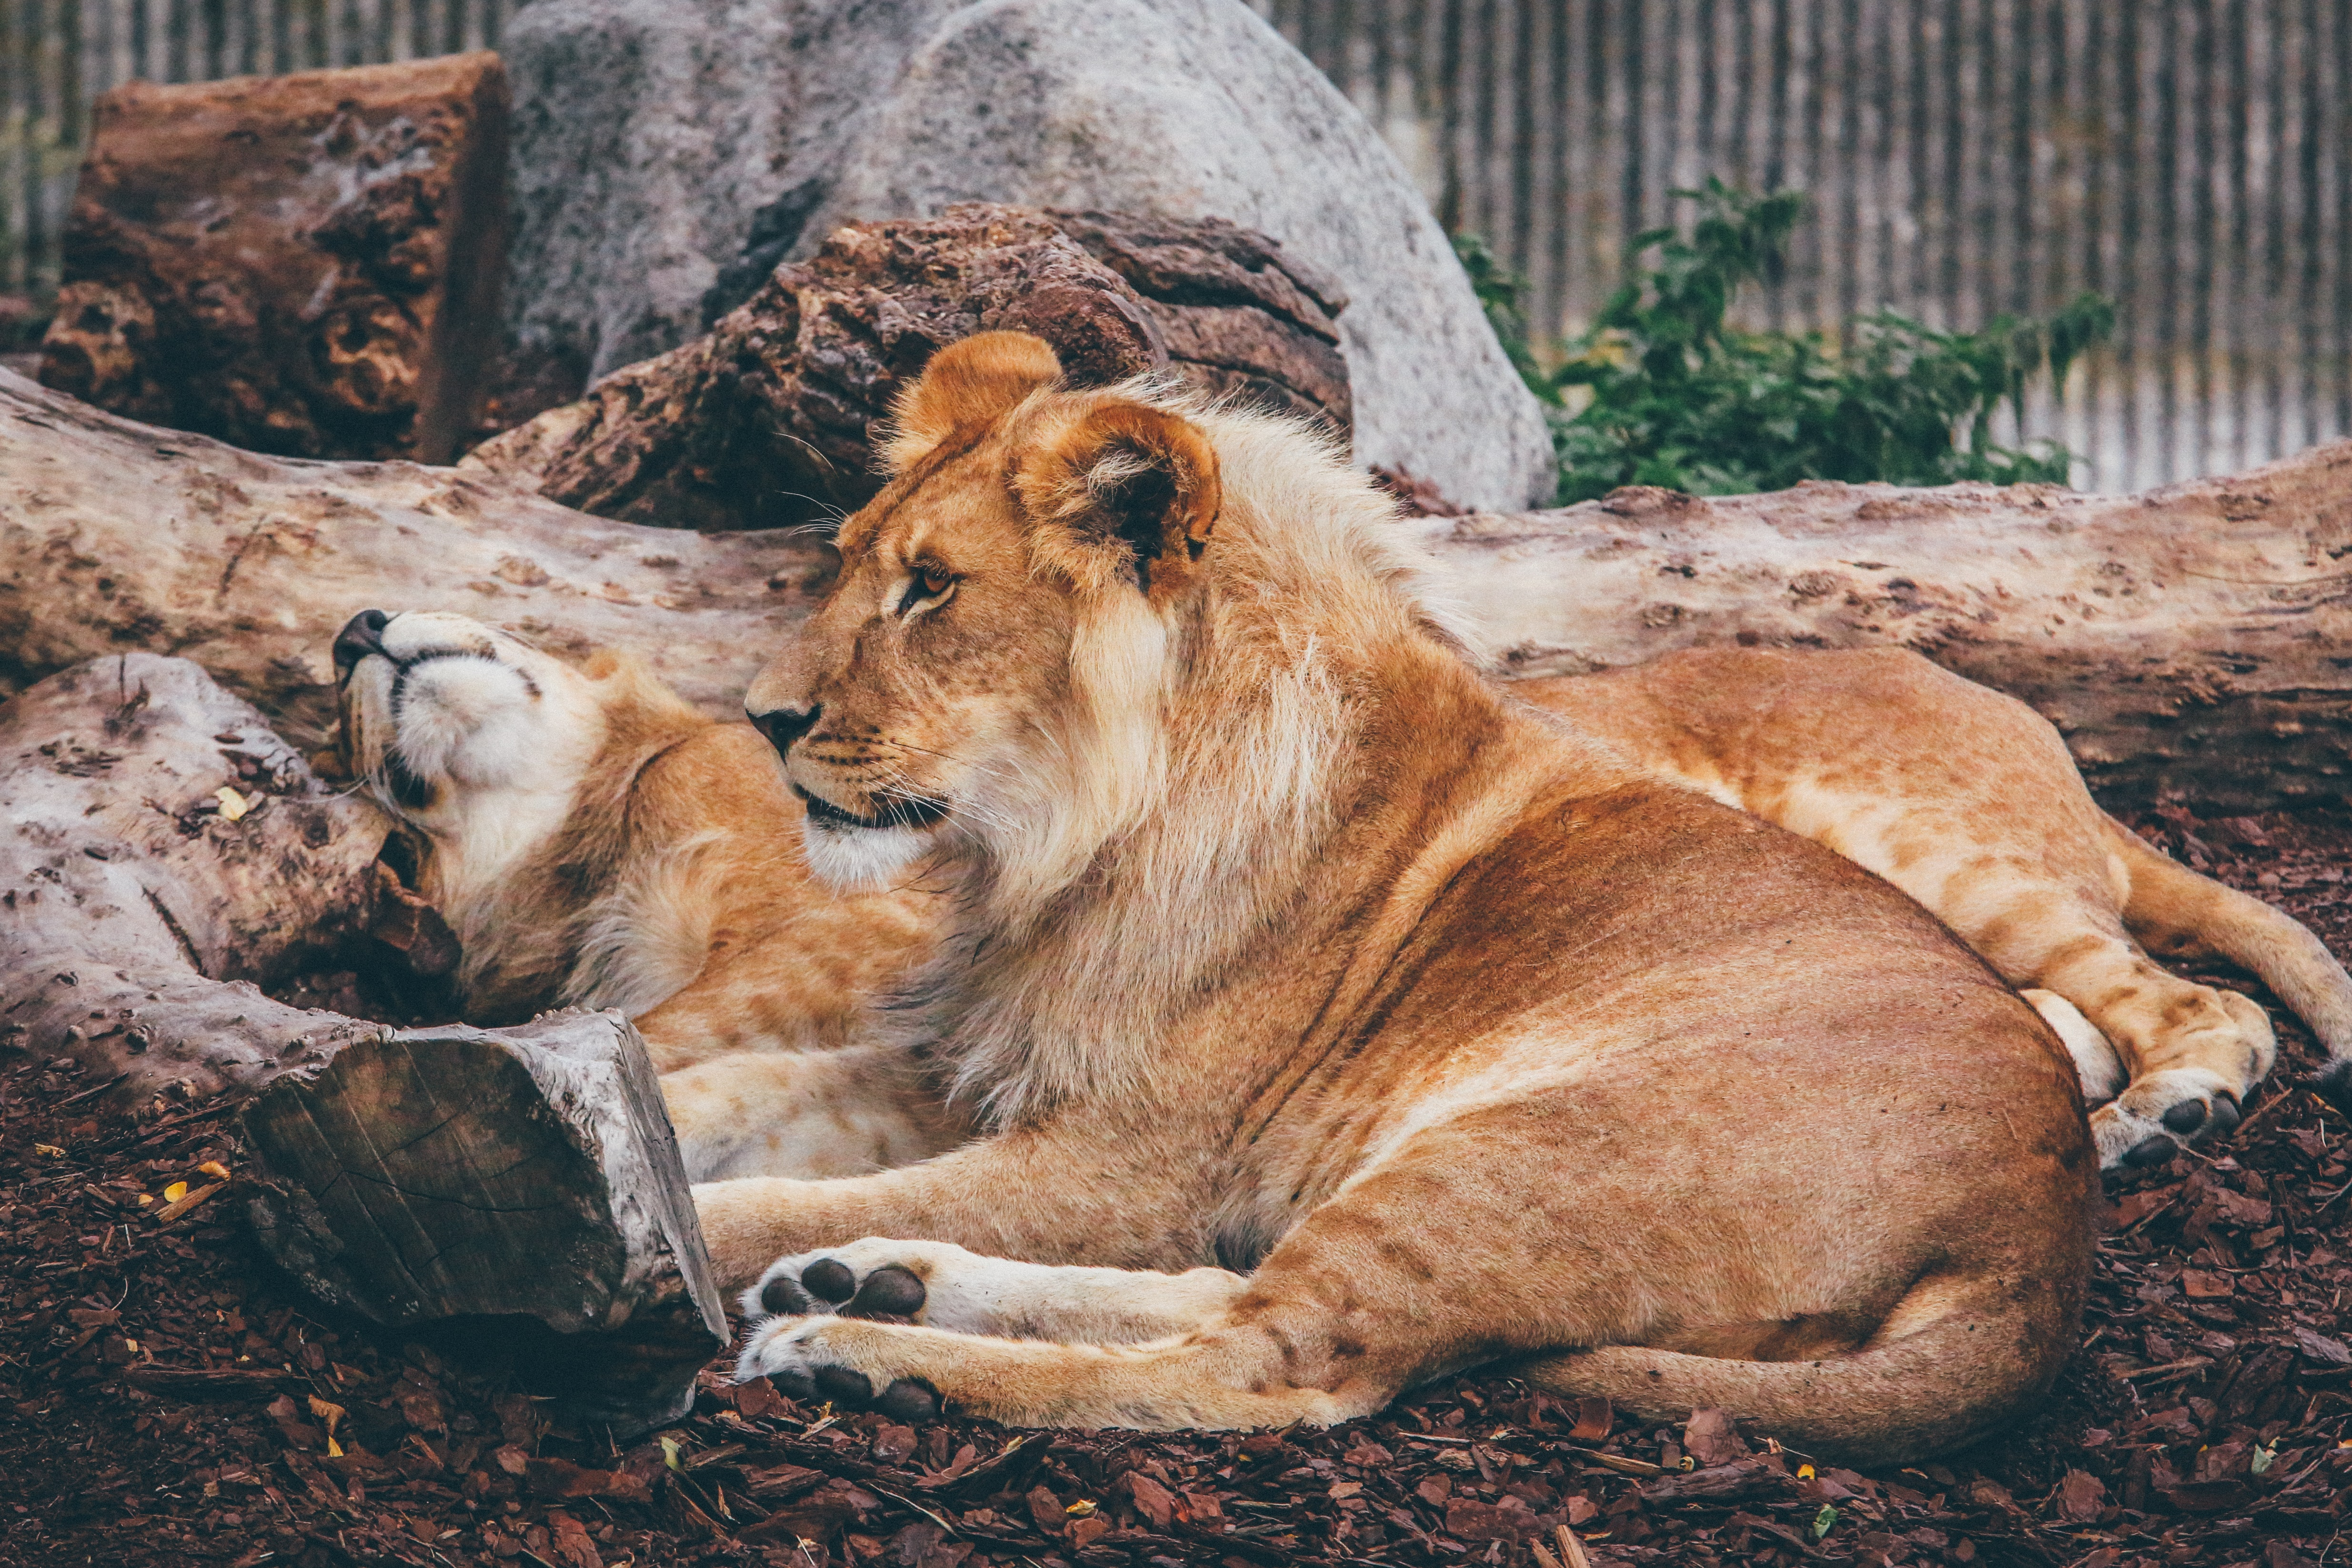 Two lions reposing on the ground near a tree trunk in the Copenhagen Zoo